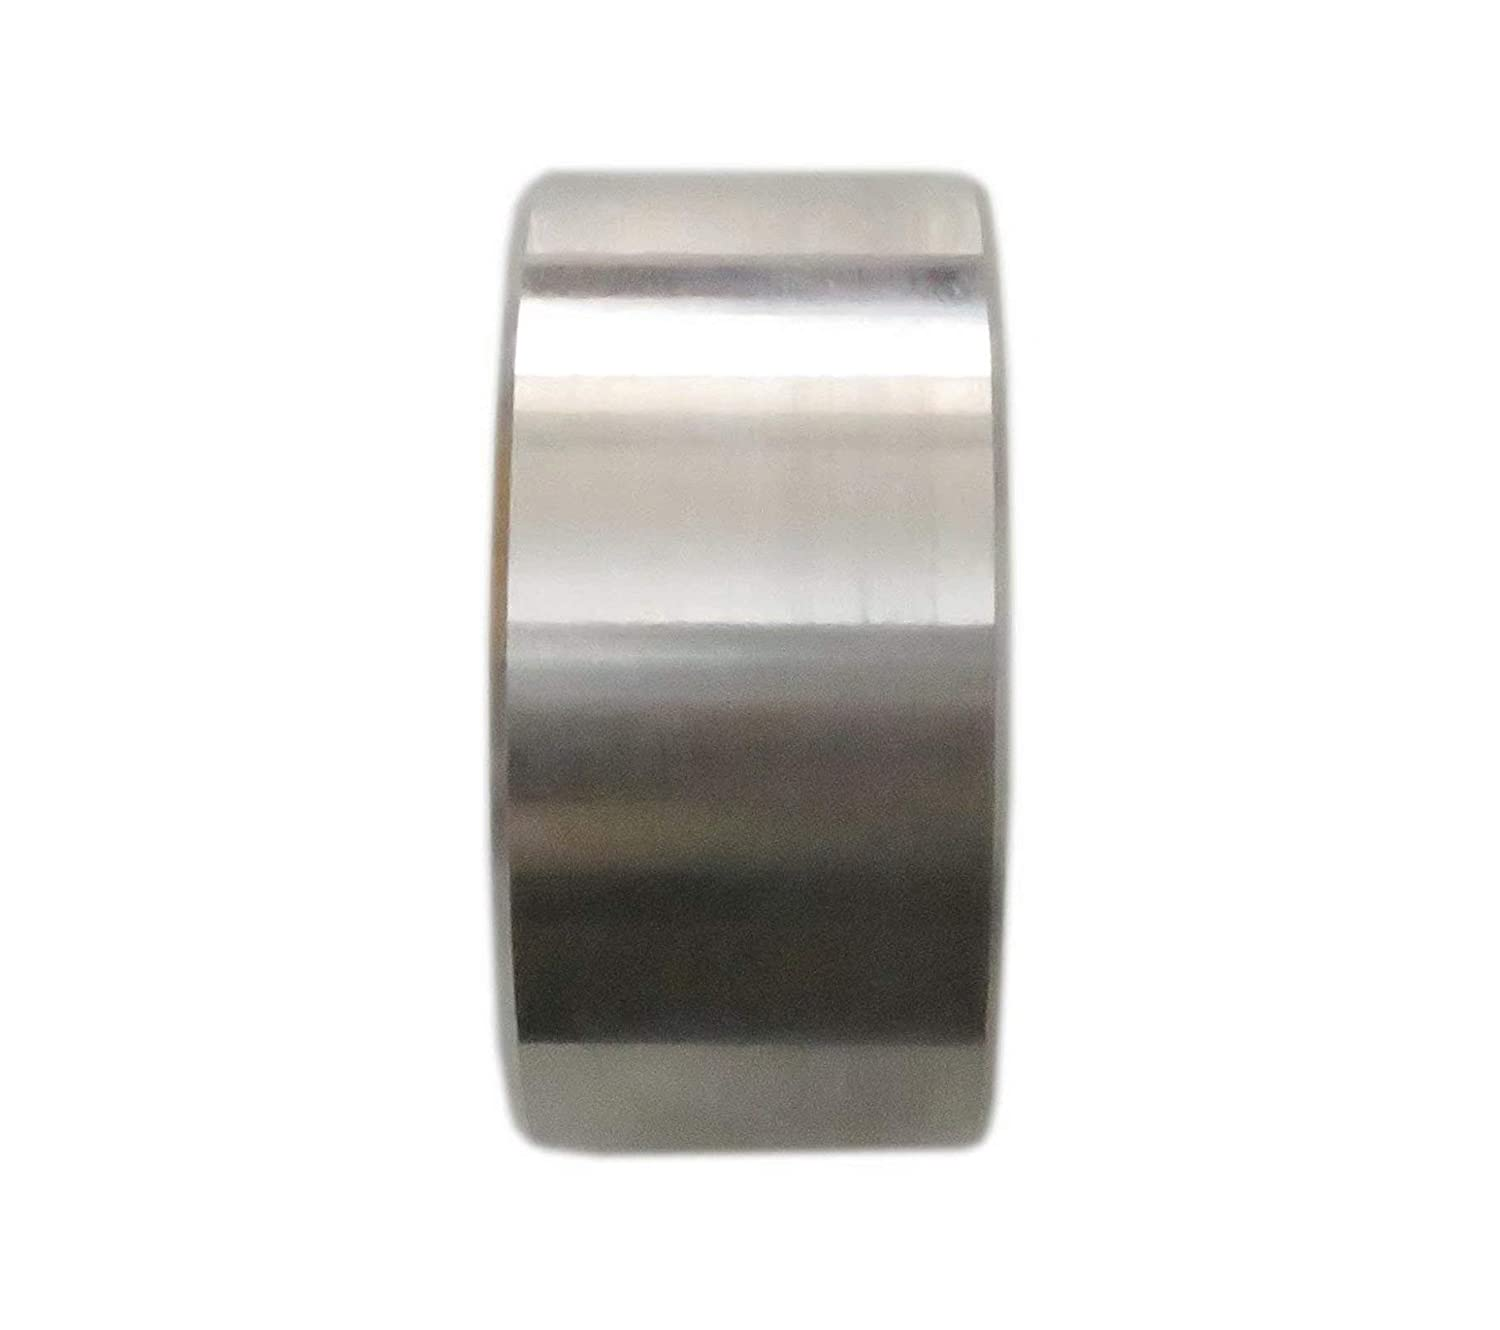 2 NPT Female Weld On Bung Fitting Suitable for Most fluids